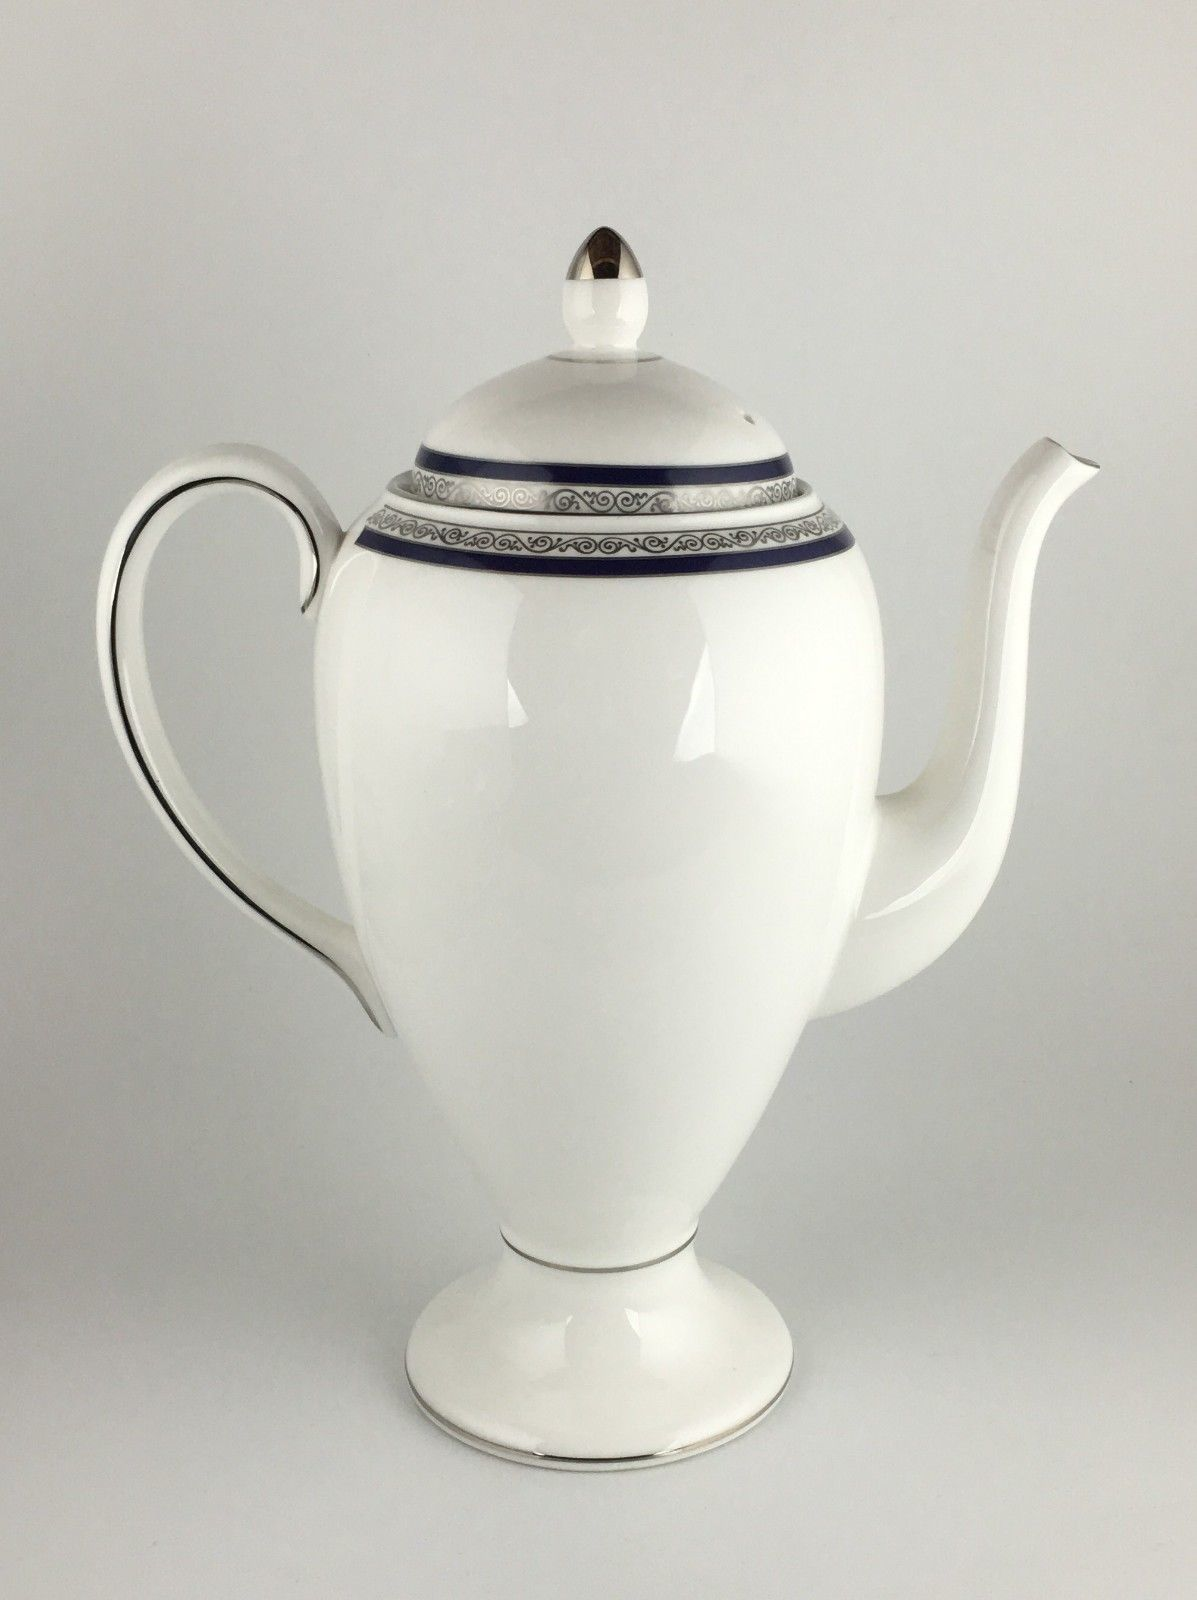 Primary image for Wedgwood SEVILLE coffee pot & lid (SKU EC 209) FREE SHIPPING